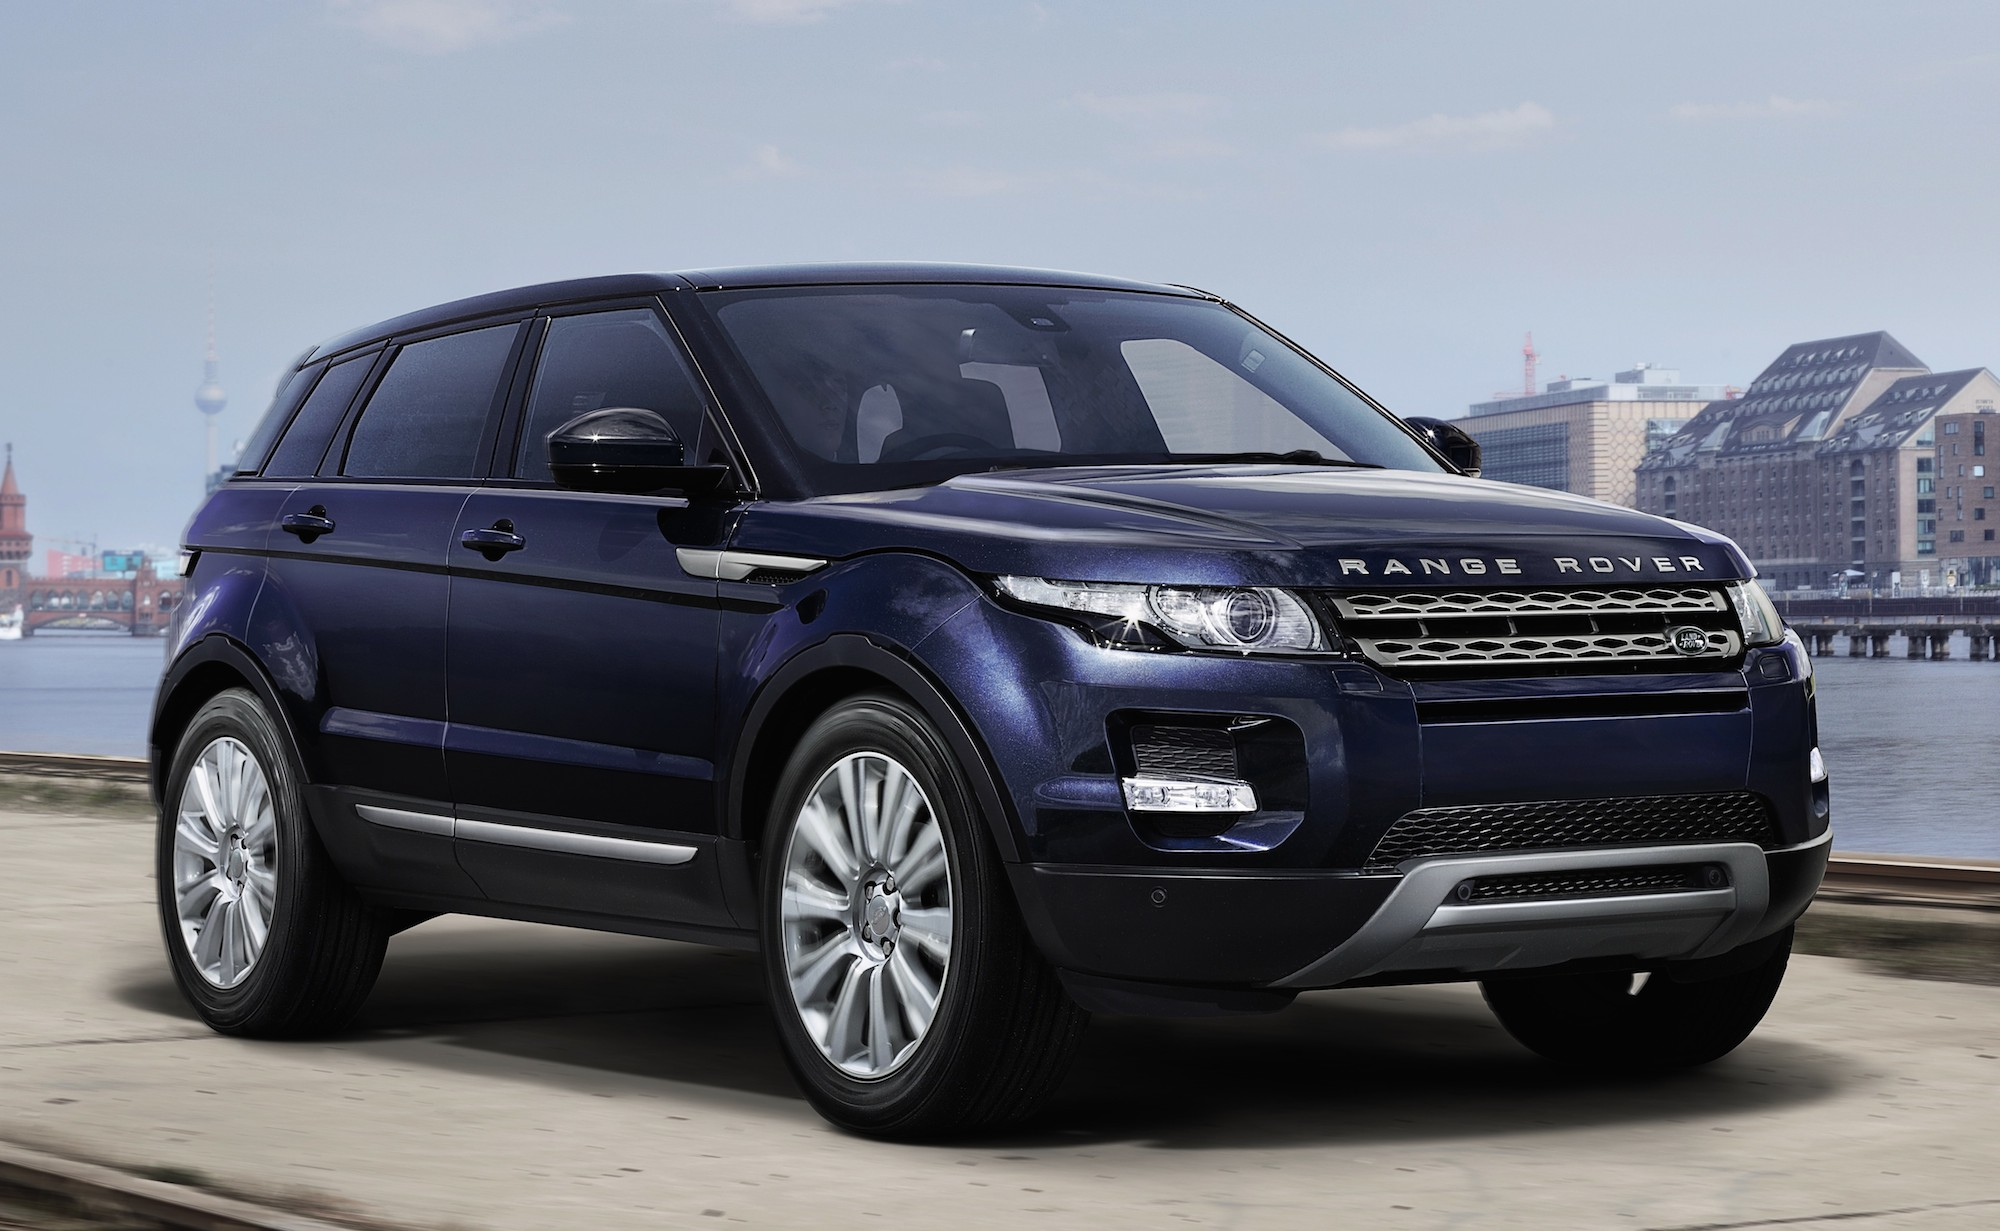 2018 Land Rover Range Rover Evoque >> AD: 2014 Range Rover Evoque is now out! Get up close and personal with it at Land Rover Malaysia ...